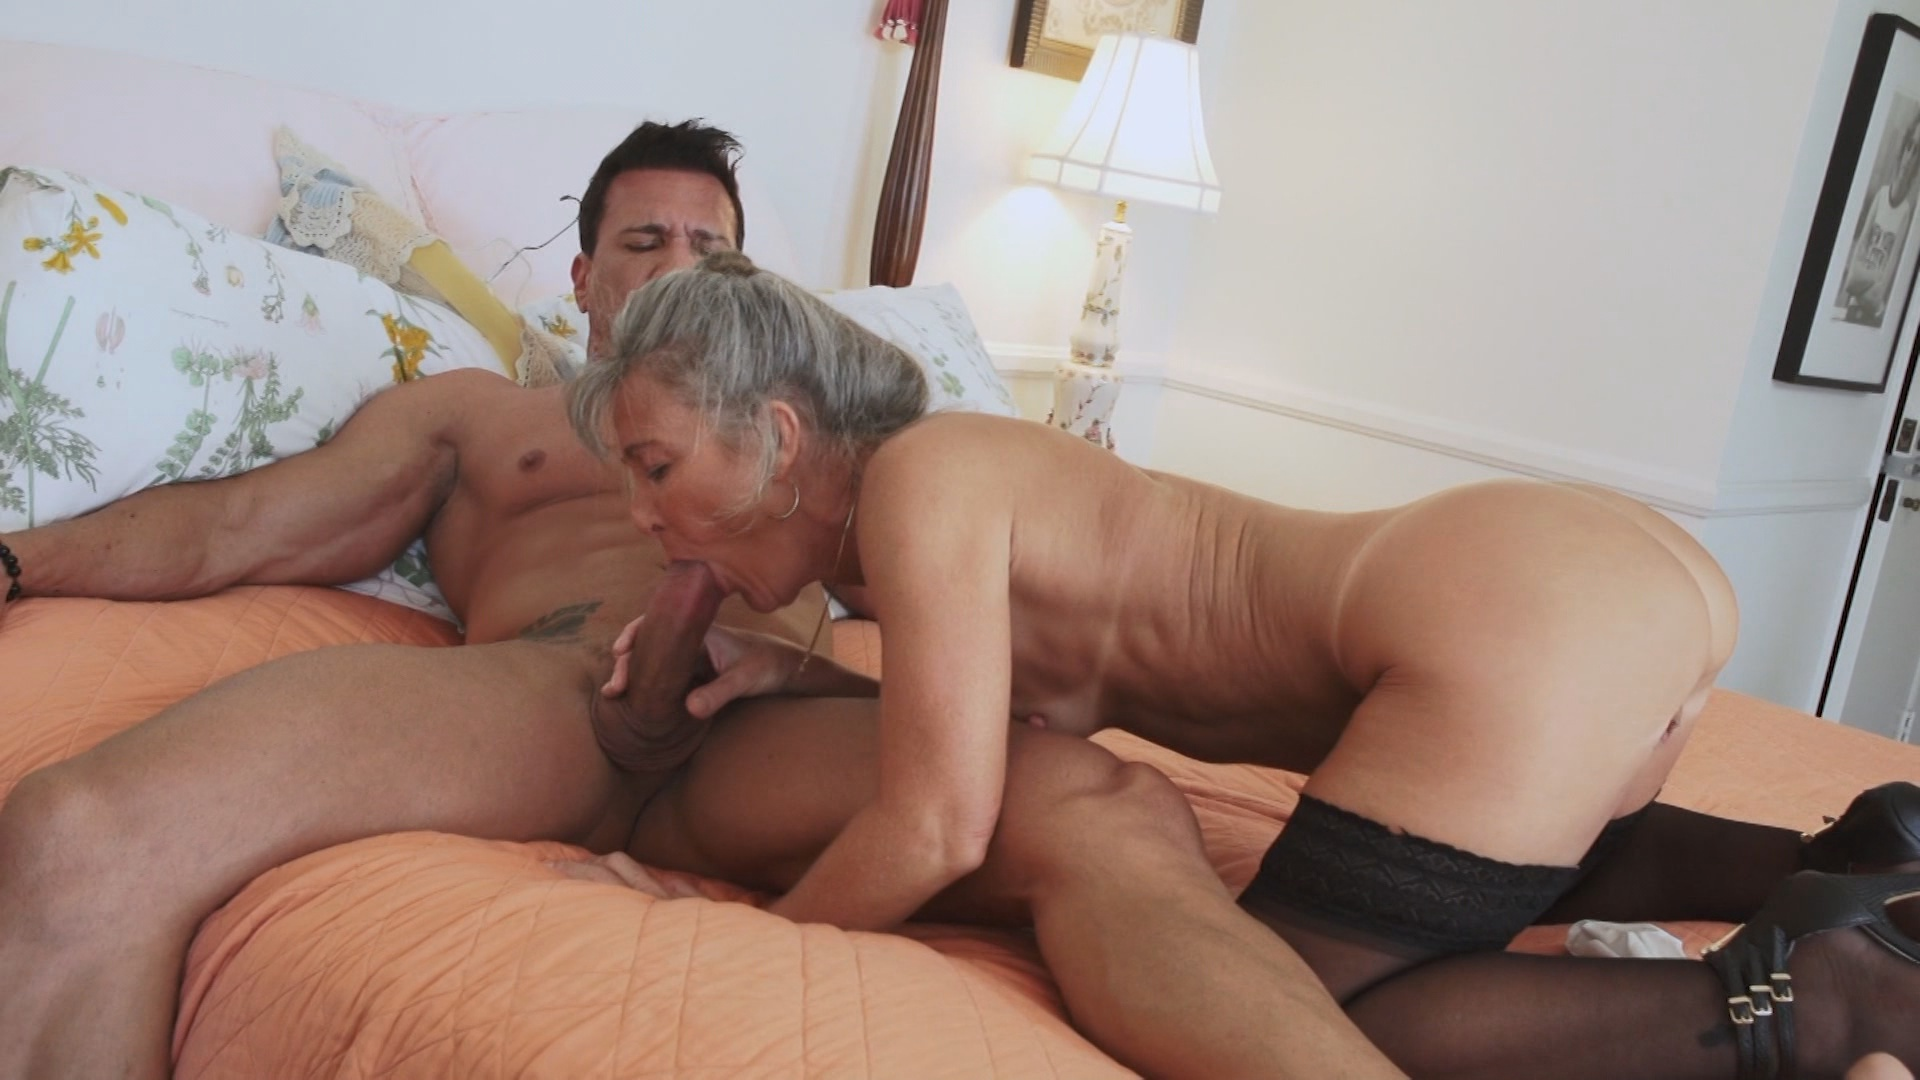 Horny Grannies Love To Fuck 10 xvideos195193